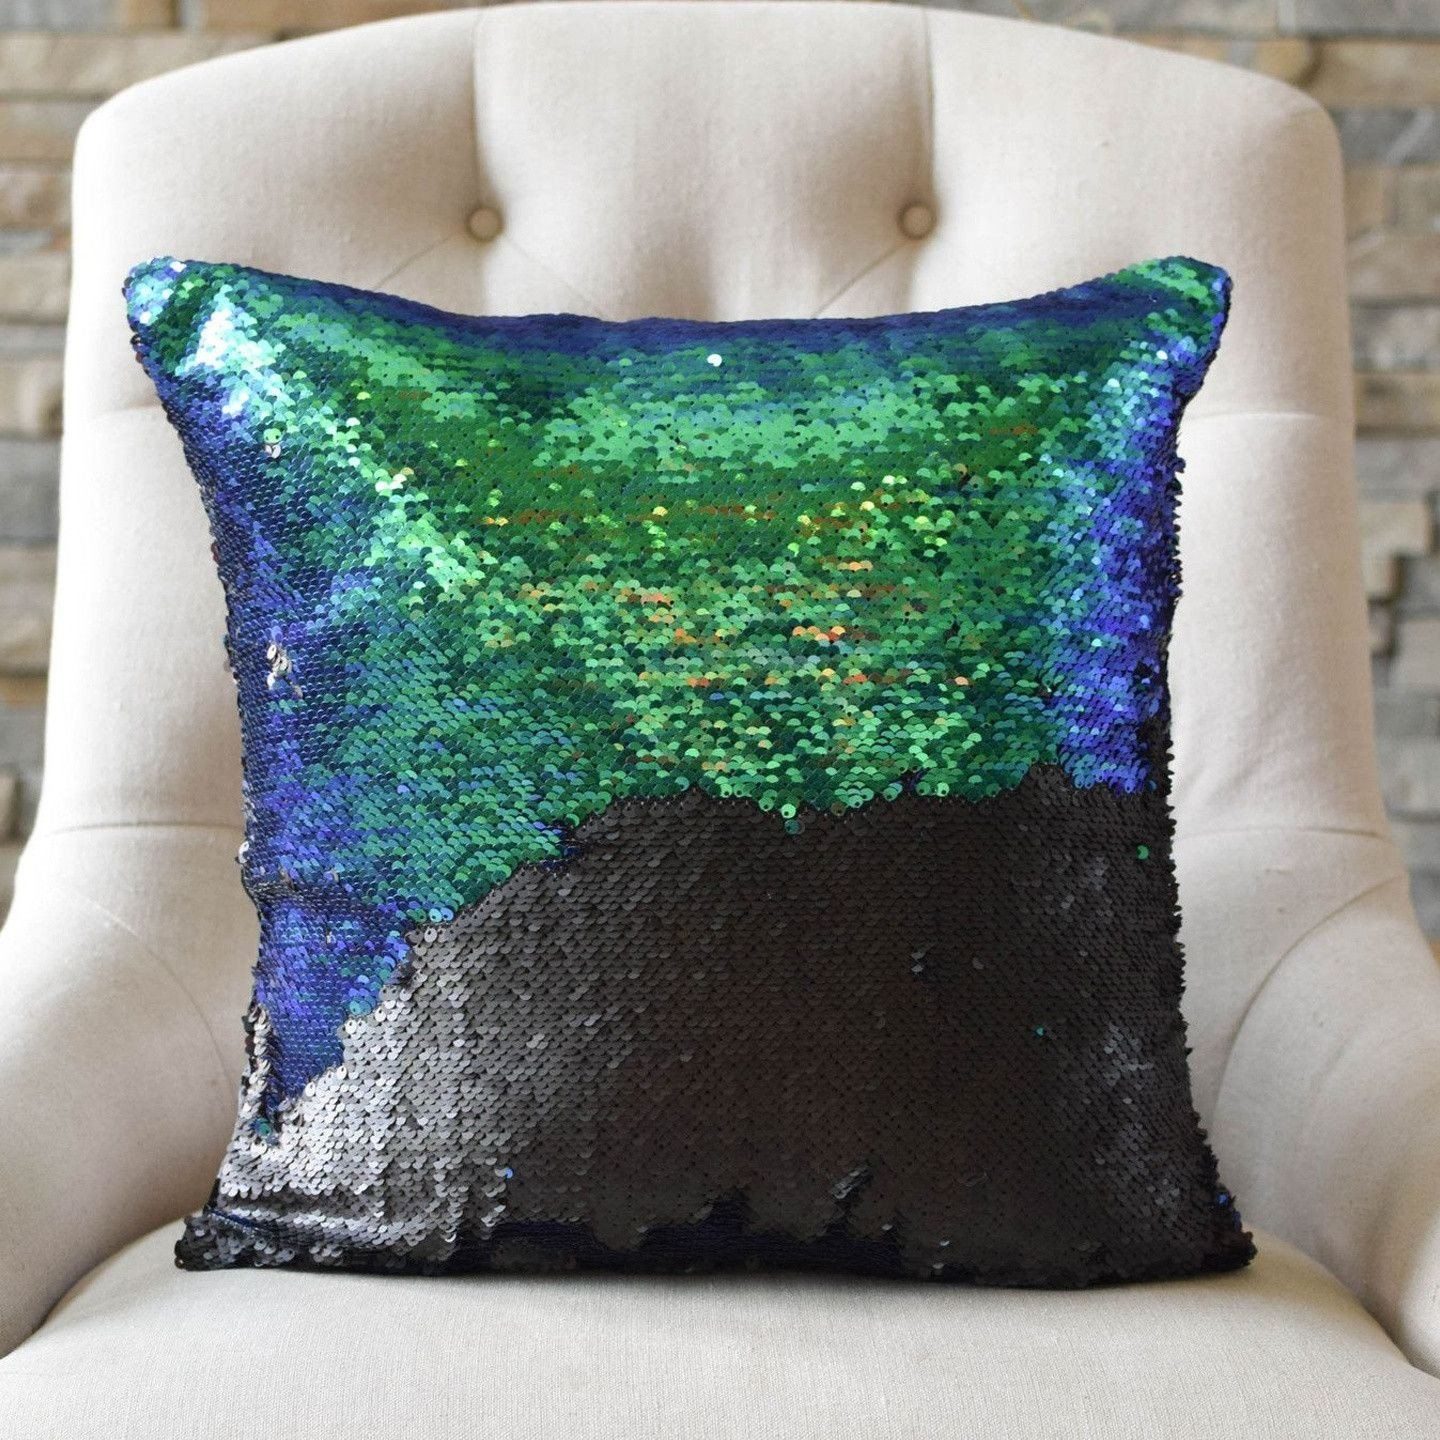 Amazing Blue And Black Pillows Part - 11: Mermaid Pillow Co